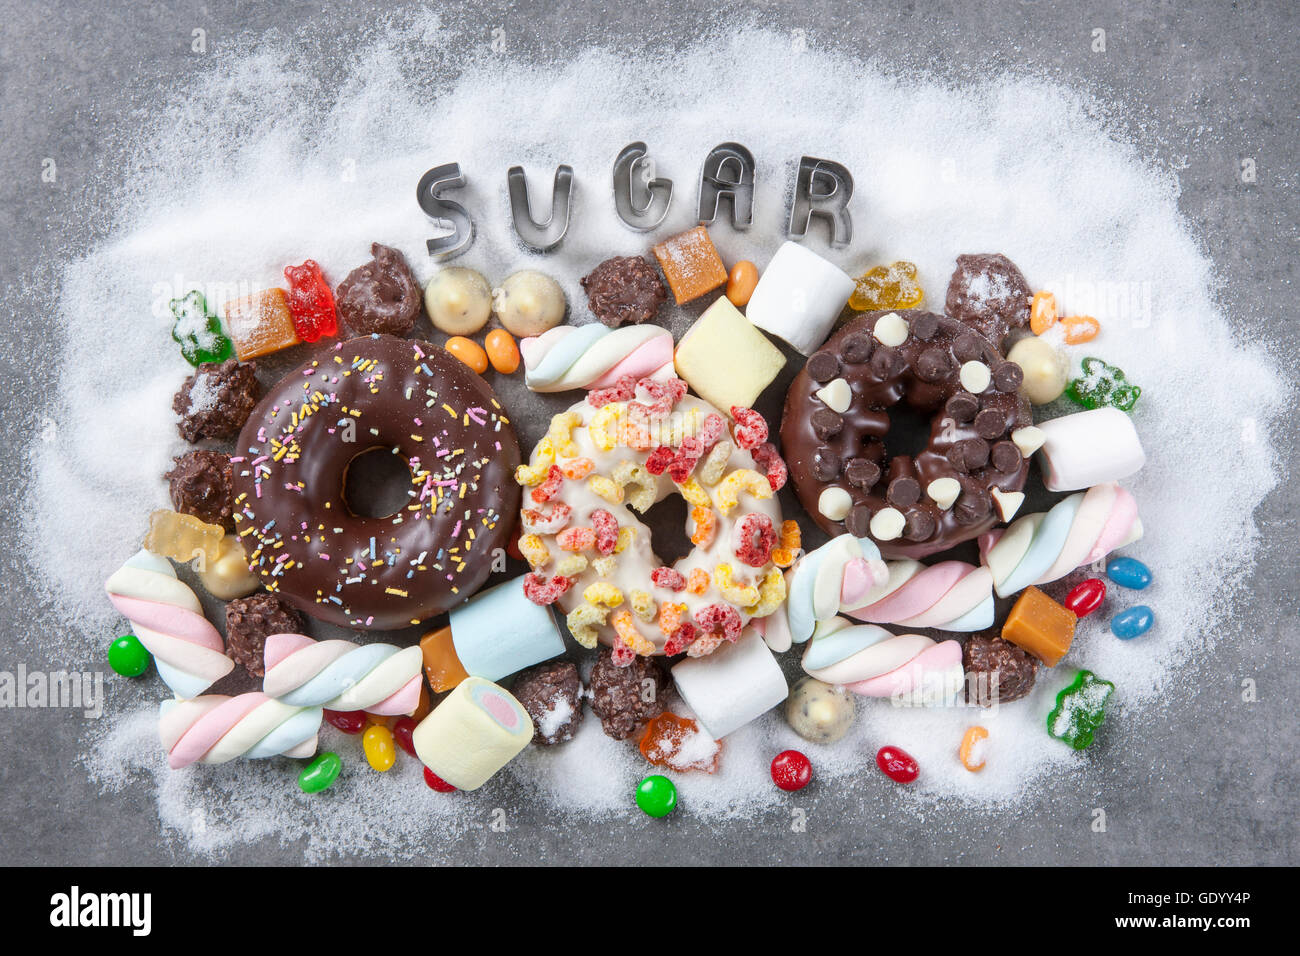 Typographical word of SUGAR and various sweet food - Stock Image